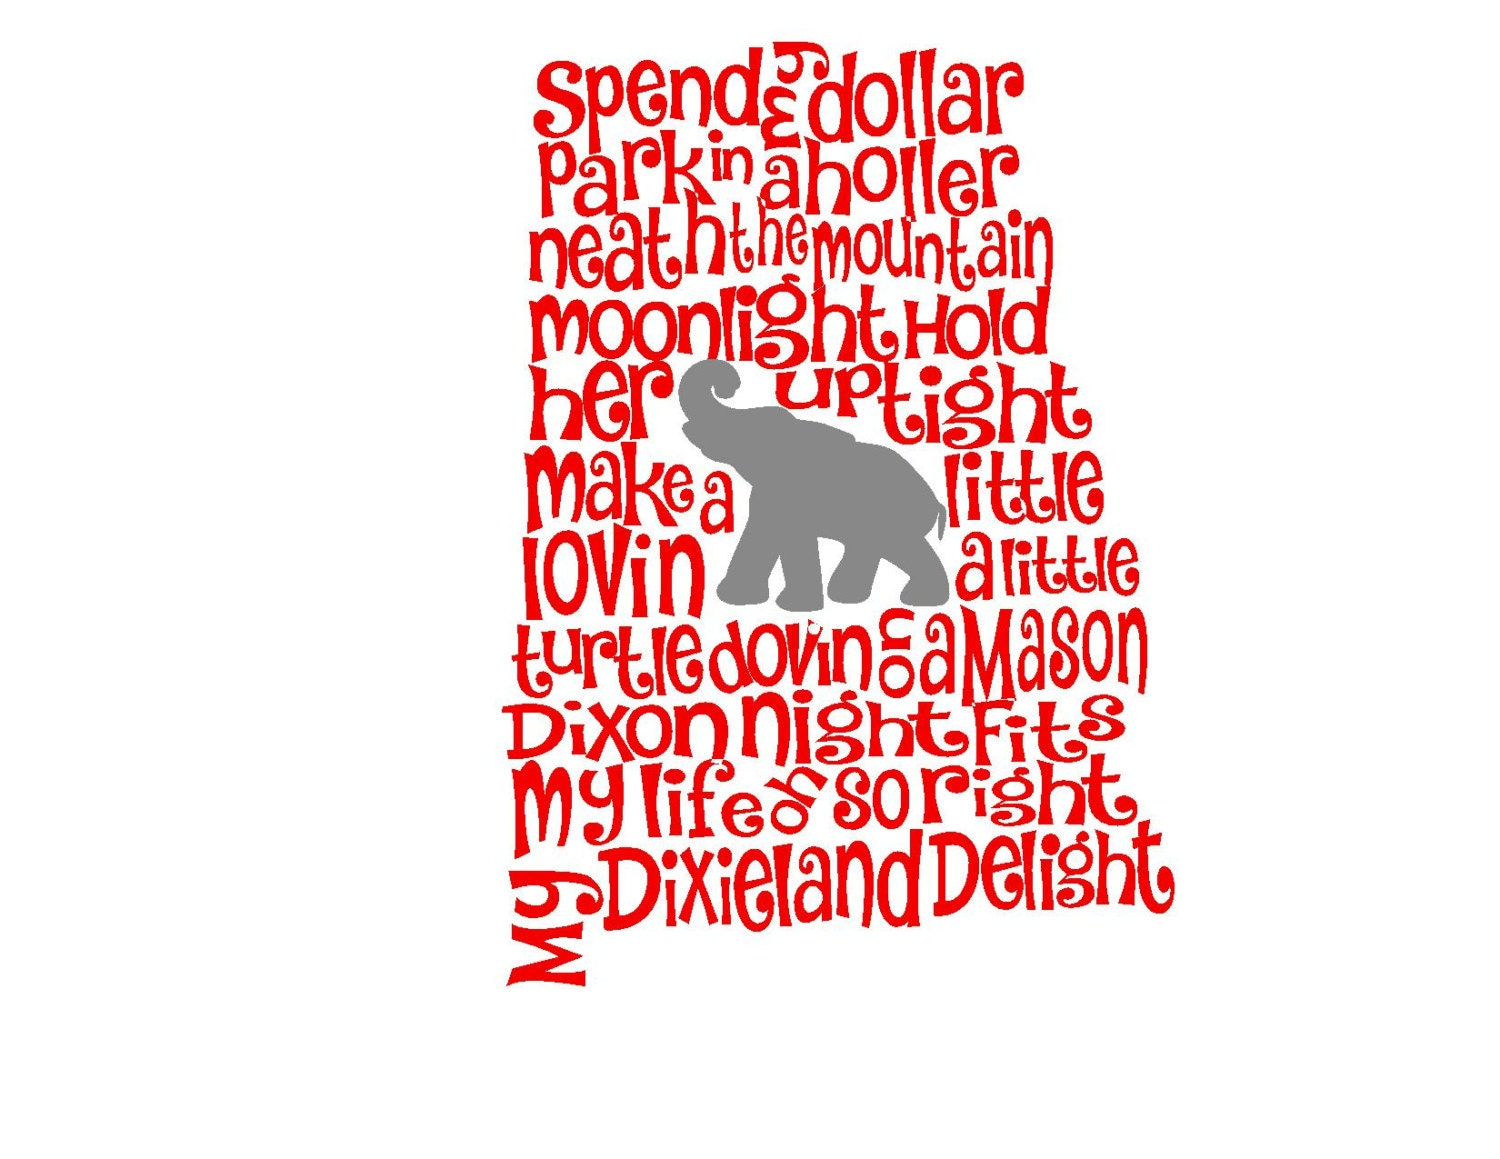 Alabama Dixieland Delight Song State Svg Or By Mandanoelle